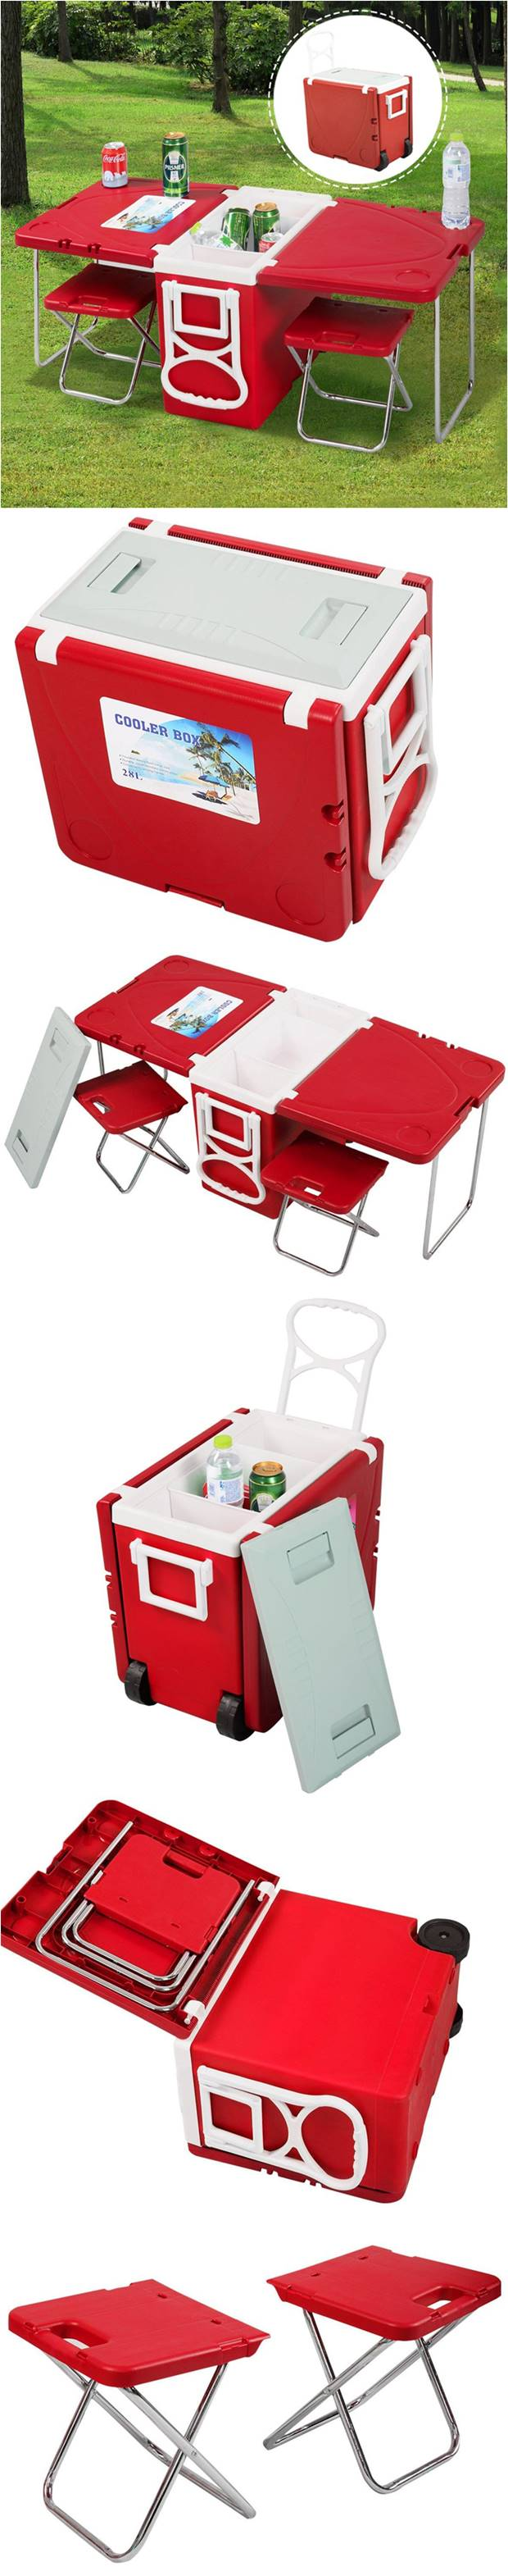 Creative Ideas - Multi-Functional Rolling Cooler With Picnic Table And Two Chairs